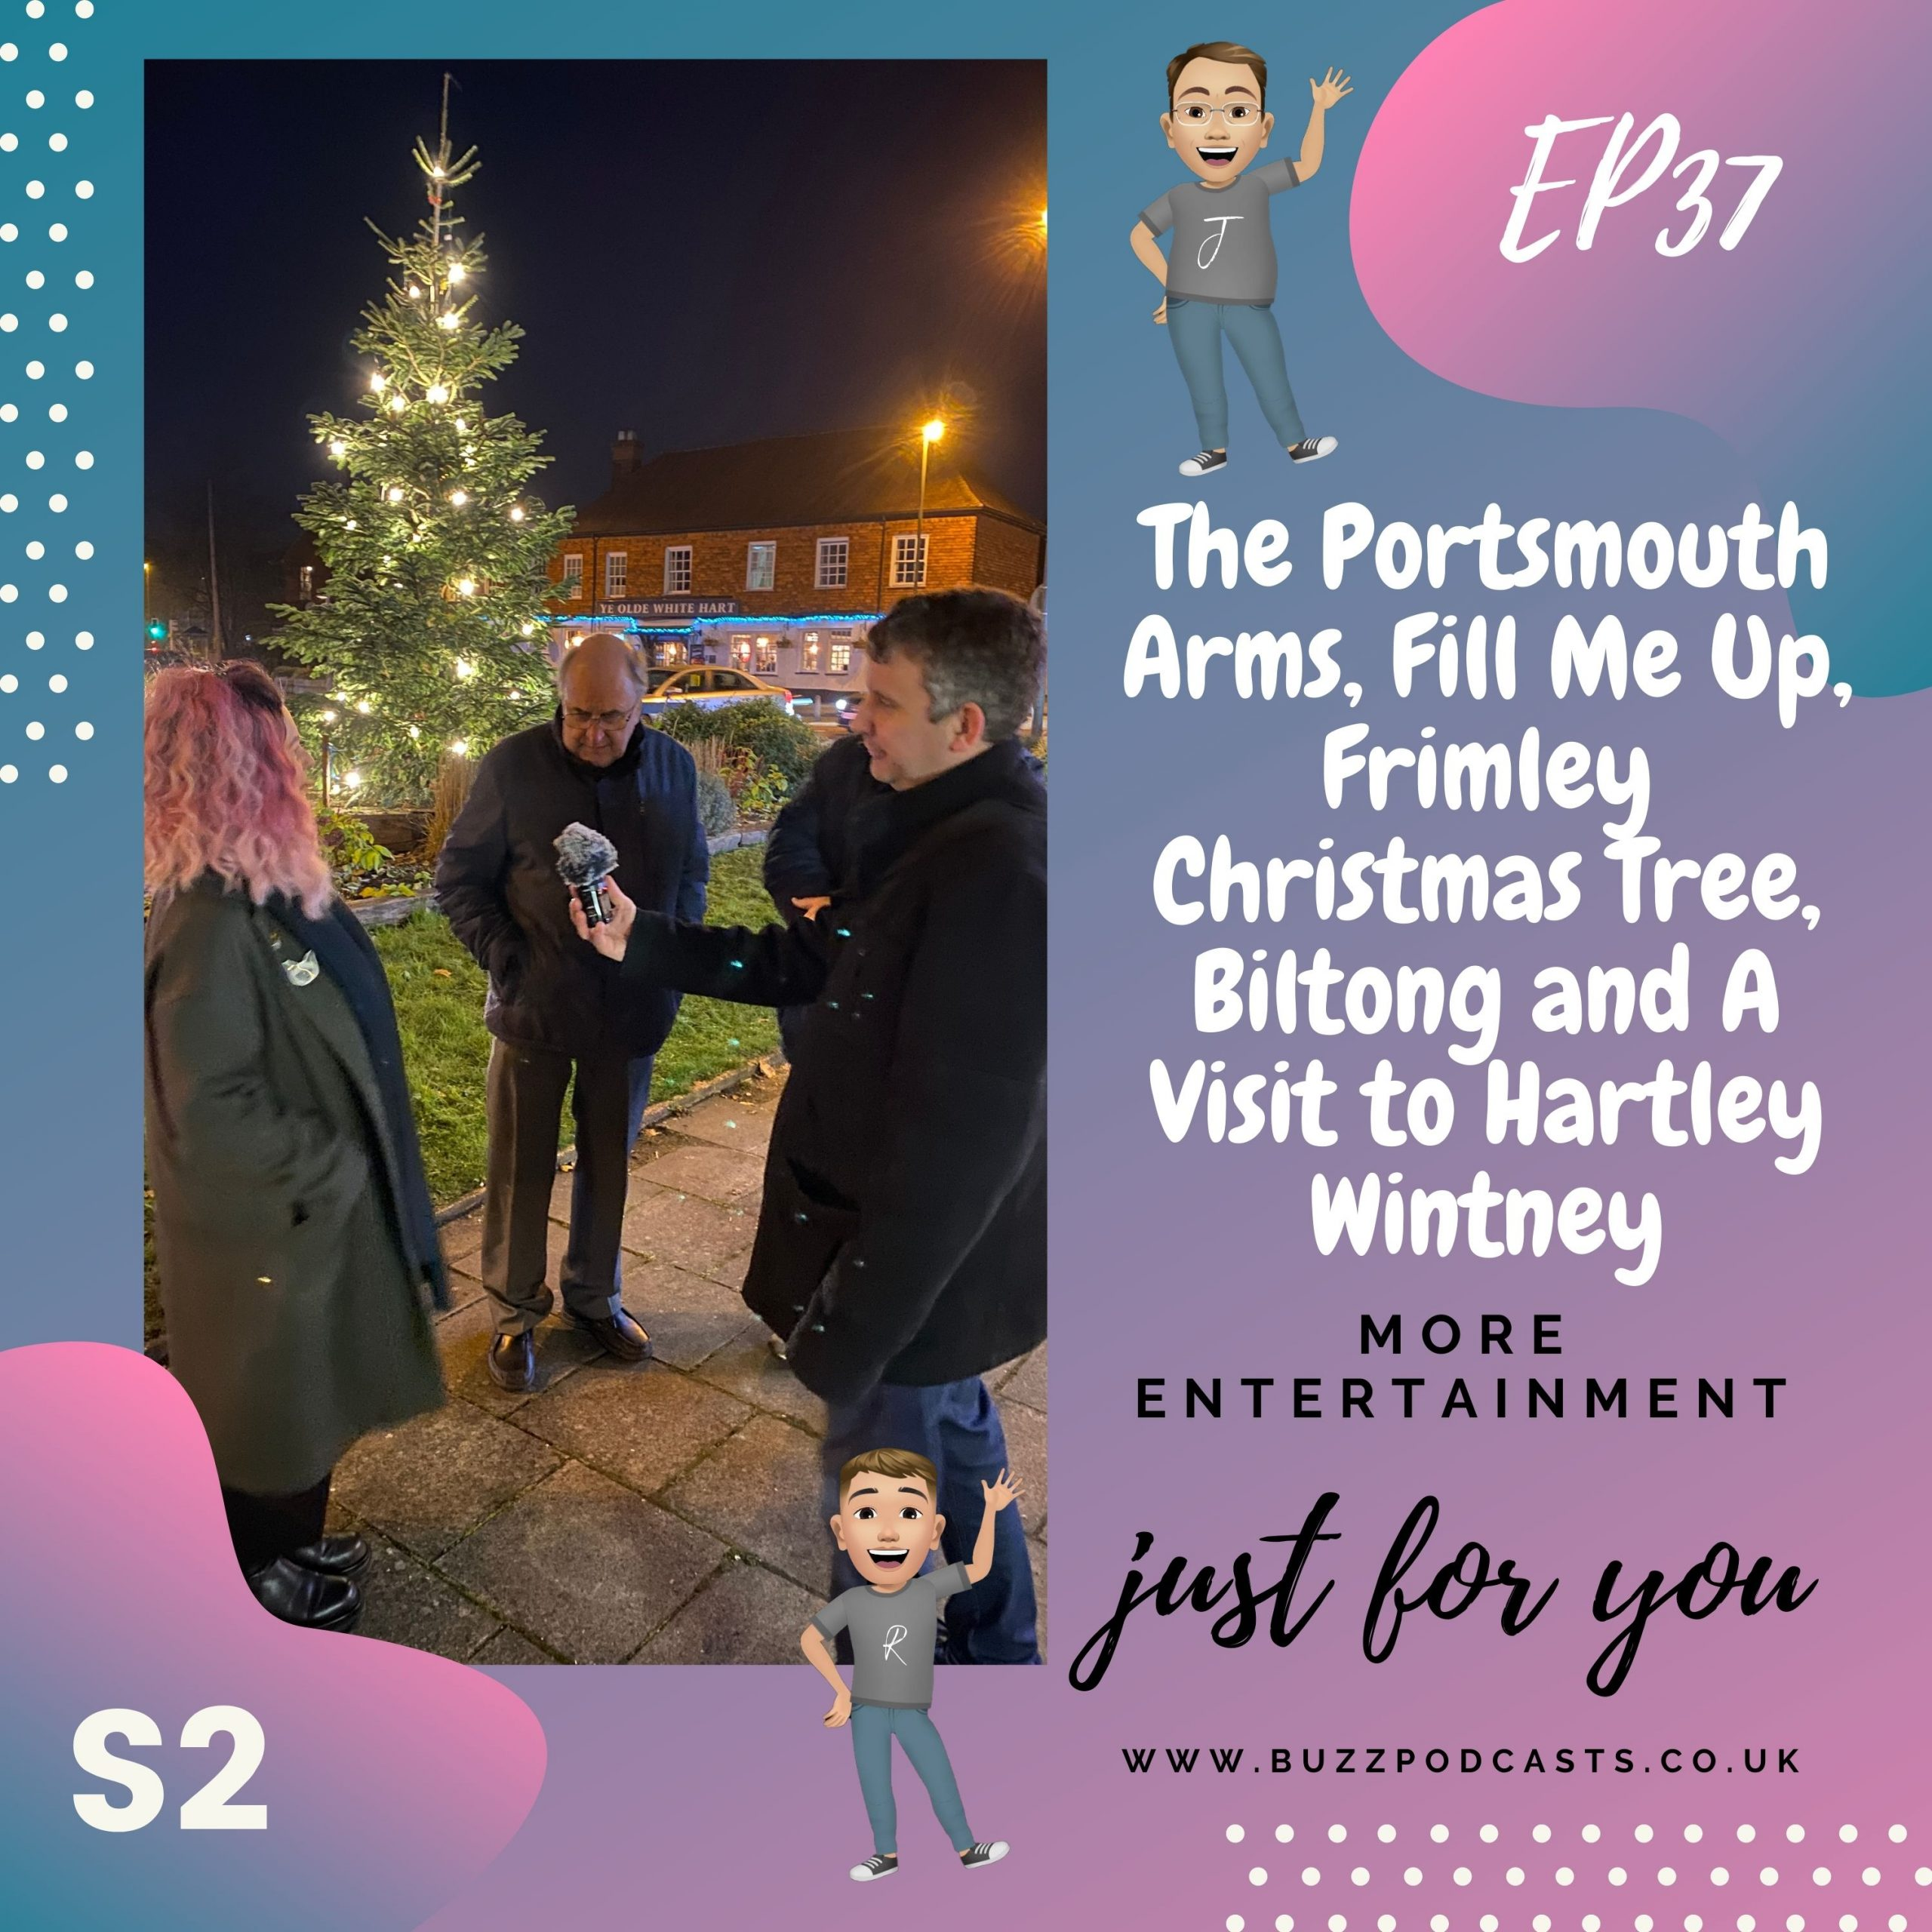 The Portsmouth Arms, Fill Me Up, Frimley Christmas Tree, Biltong and A Visit to Hartley Wintney